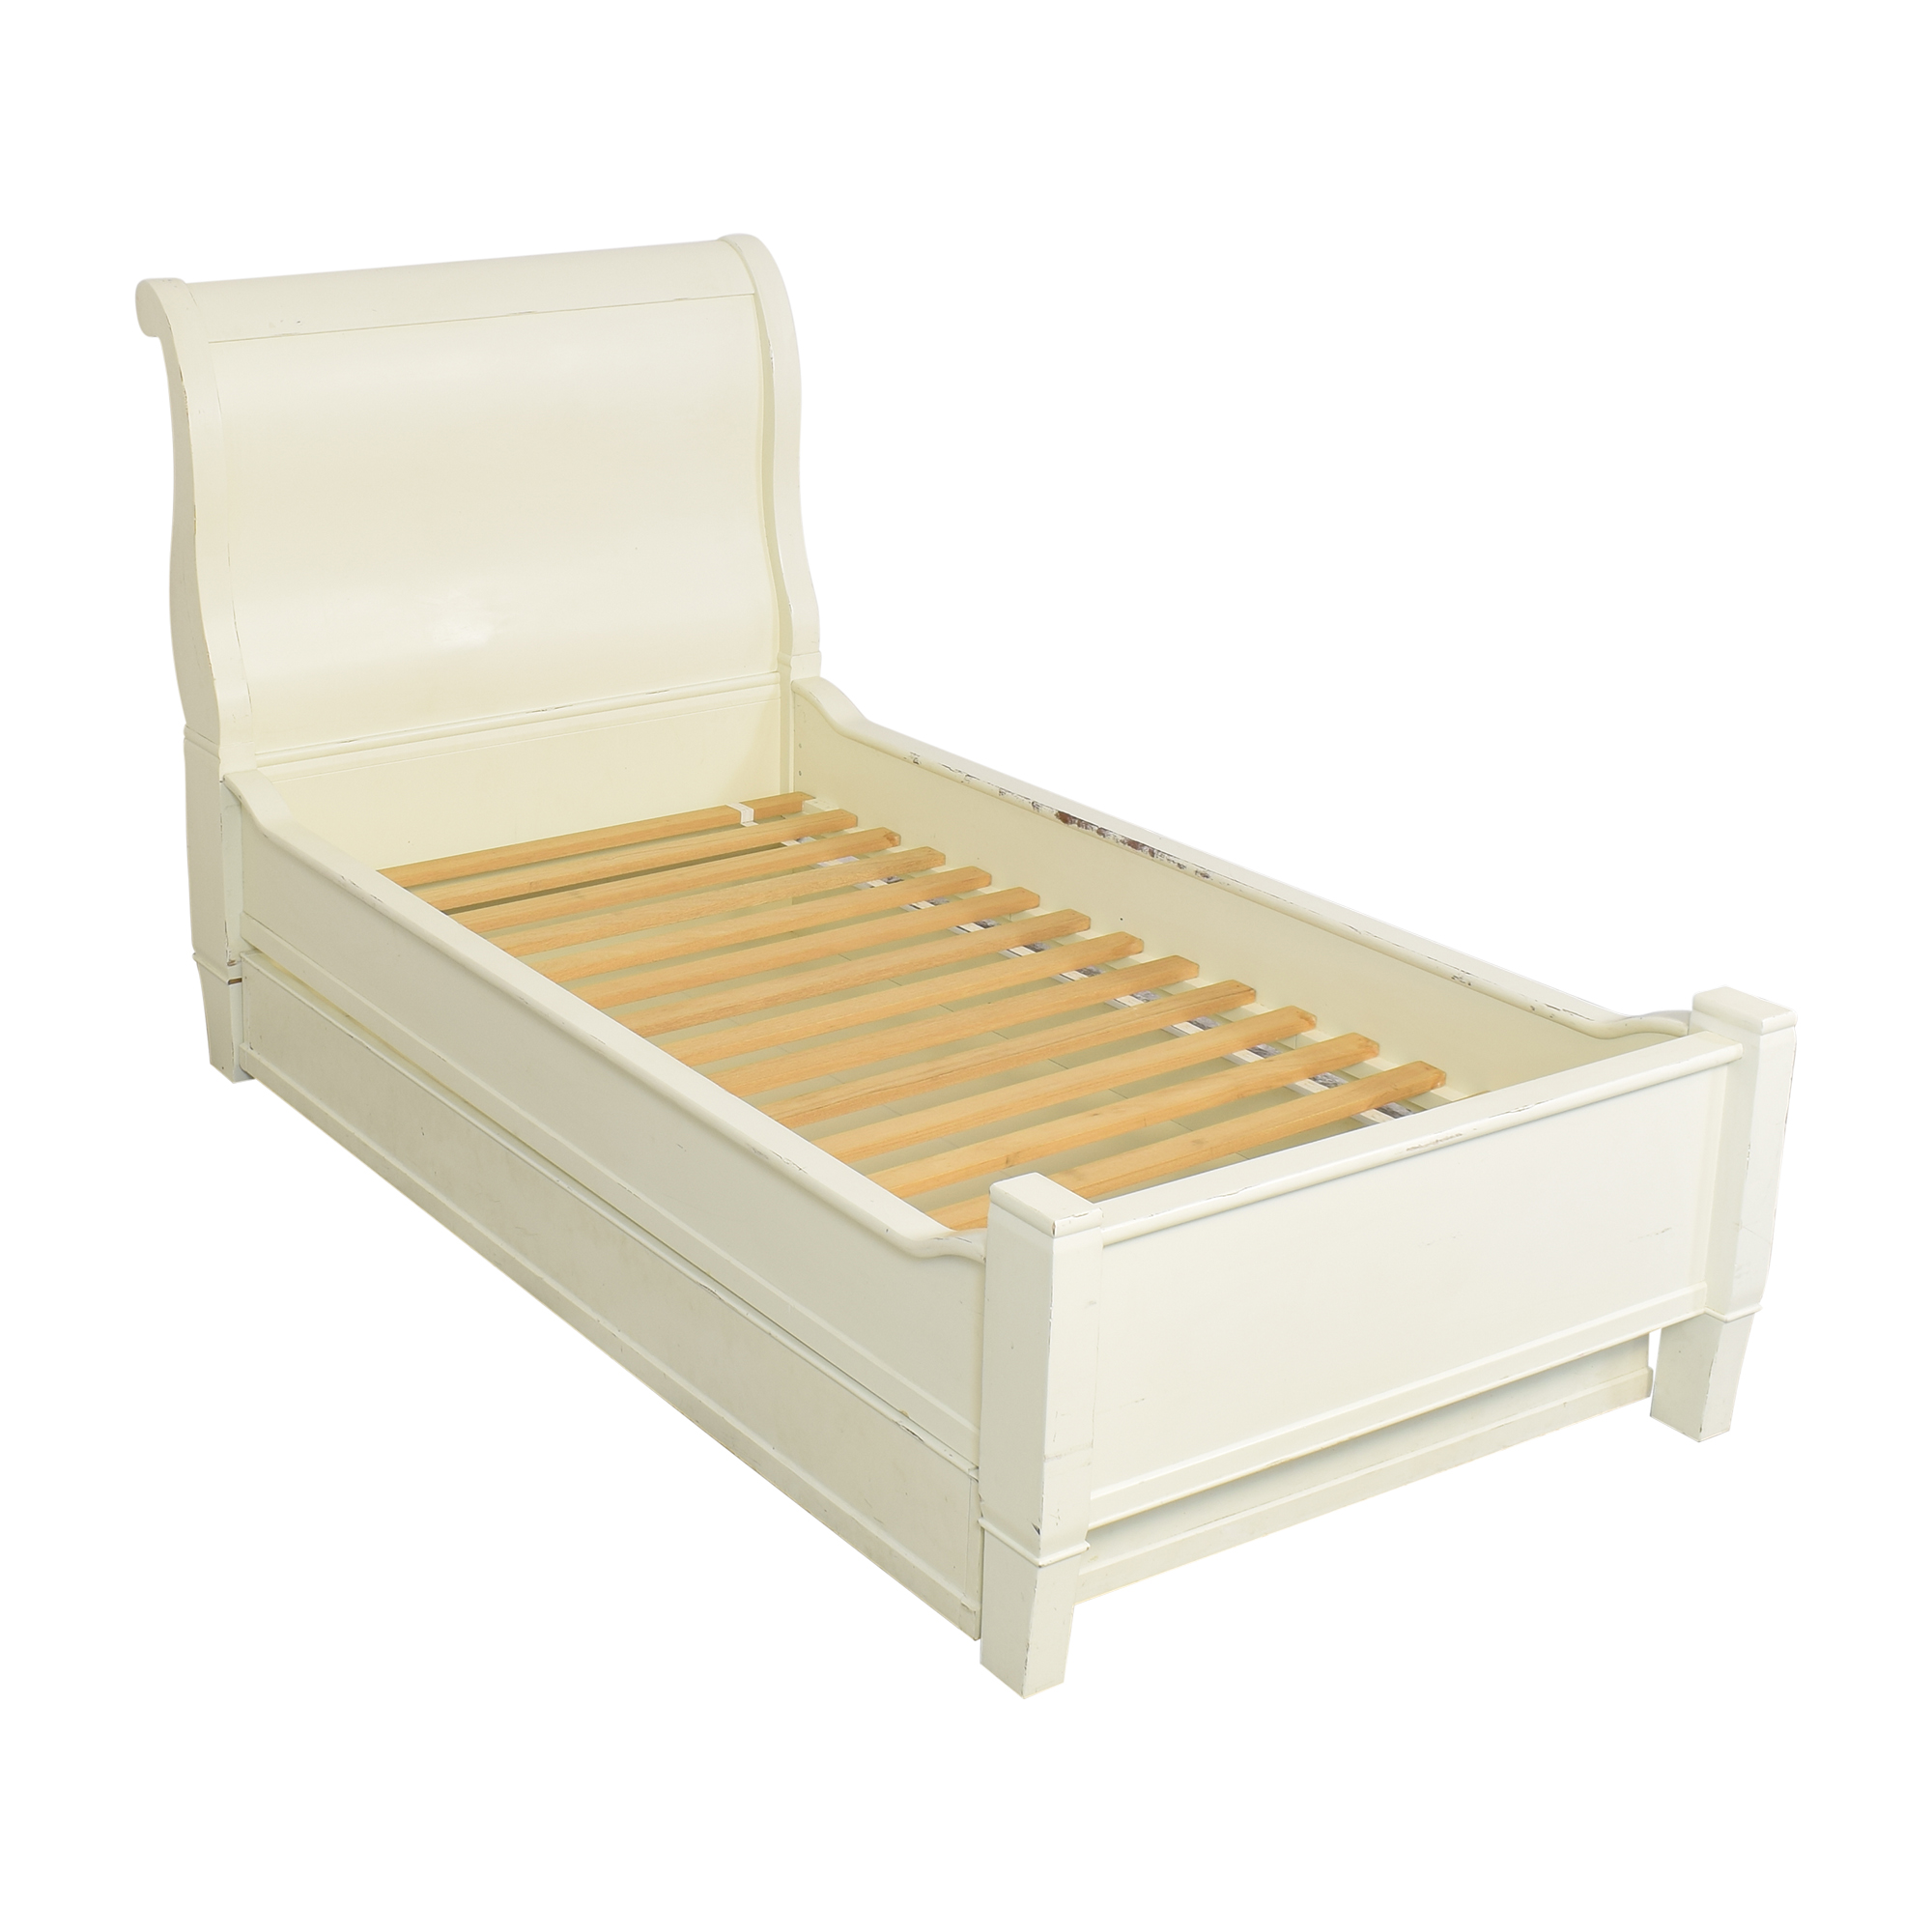 75 Off Pottery Barn Kids Pottery Barn Kids Twin Sleigh Bed With Trundle Beds